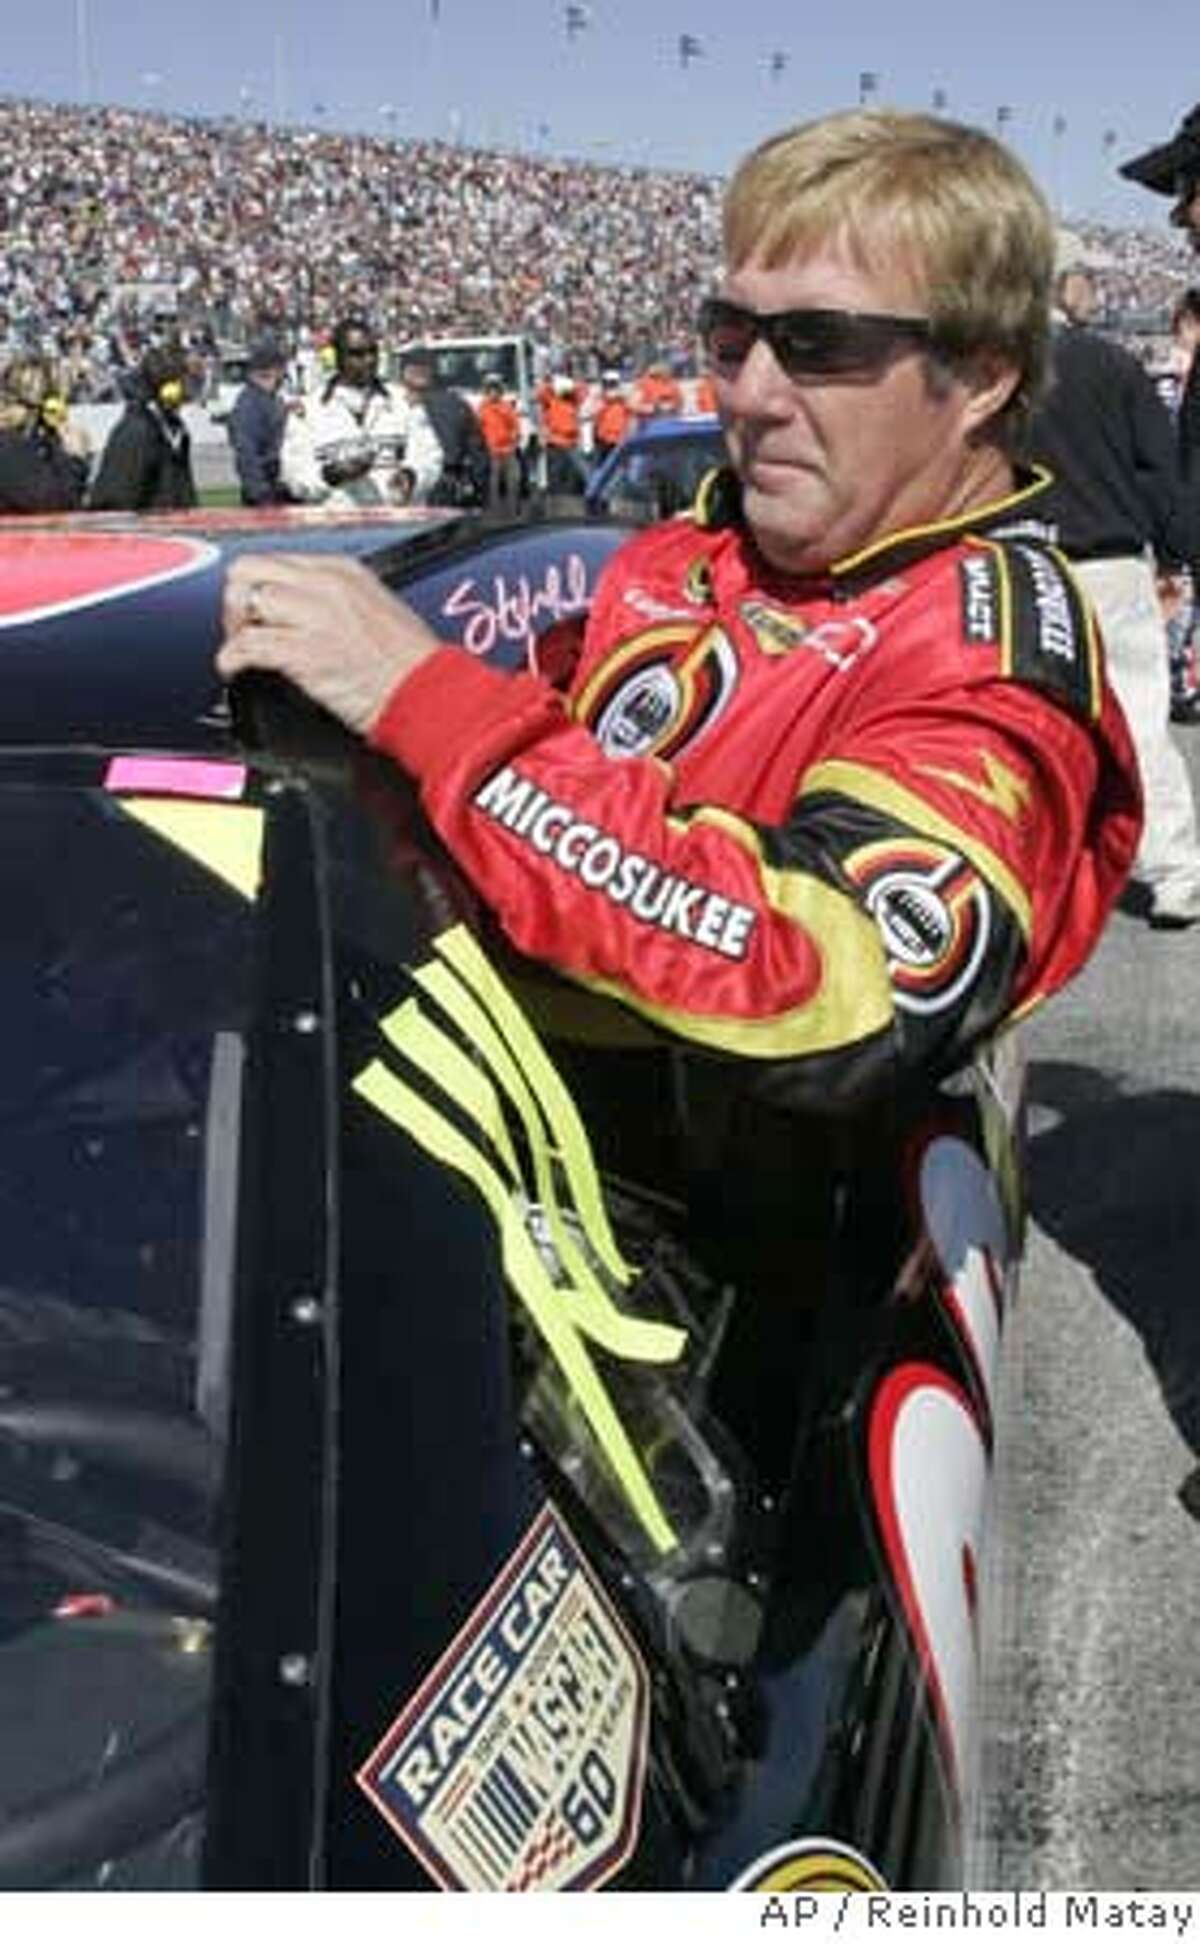 NASCAR driver Sterling Marlin gets in his car on pit road at Daytona International Speedway in Daytona Beach, Fla., Thursday, Feb. 14, 2008. Marlin was preparing for the Gatorade 150 qualifying race. (AP Photo/Reinhold Matay) EFE OUT